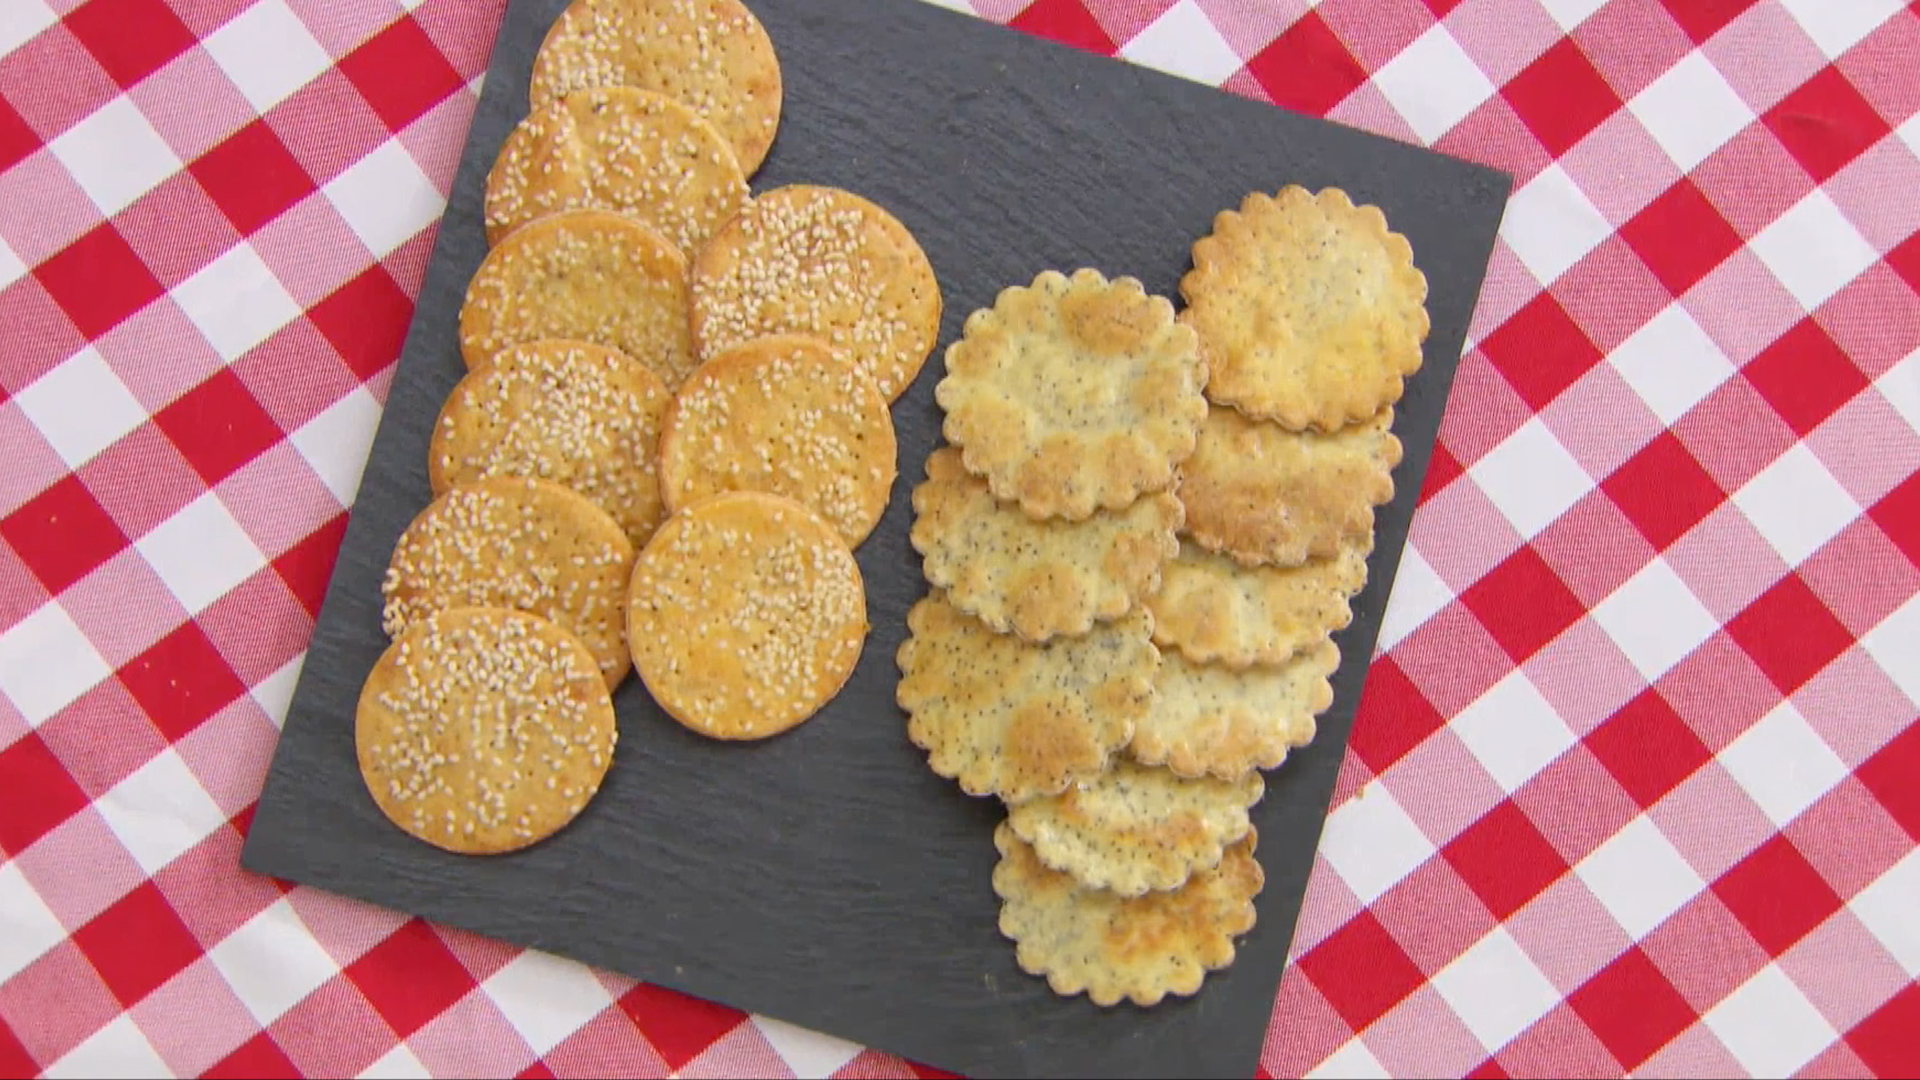 GBBA0111-Savory-Biscuits